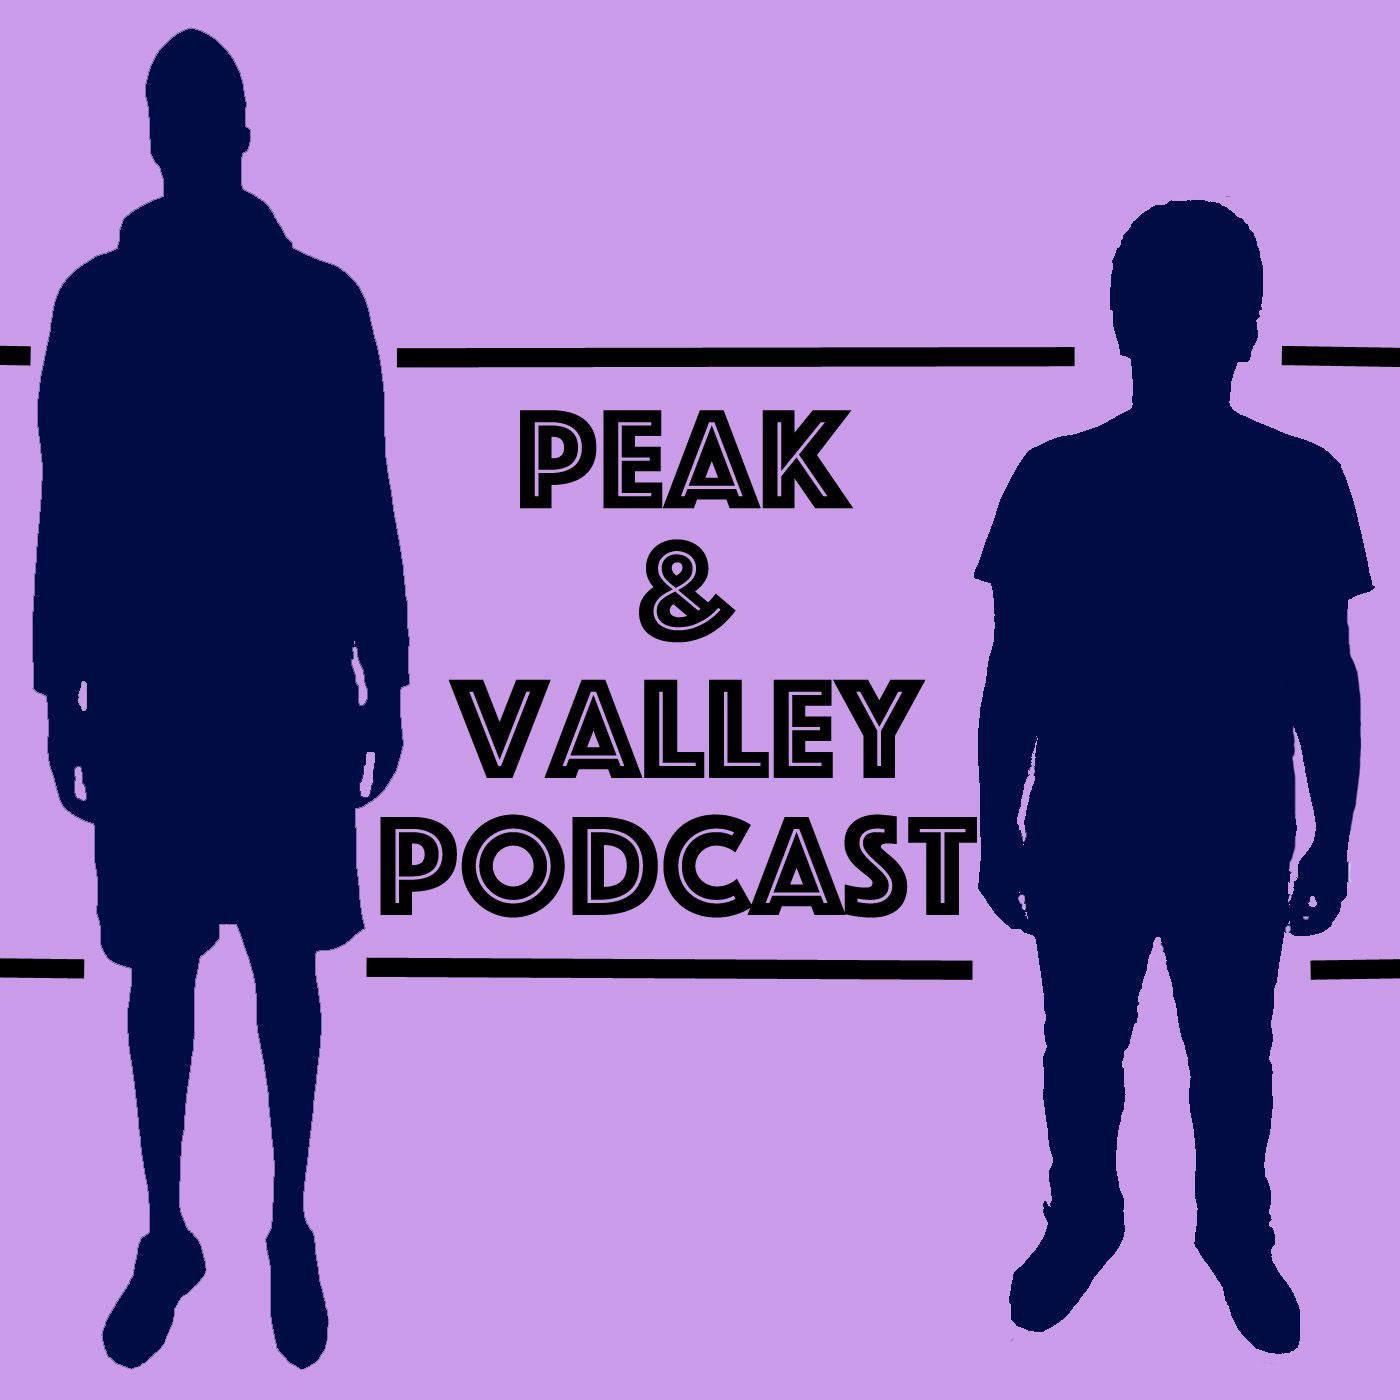 Peak and Valley Podcast